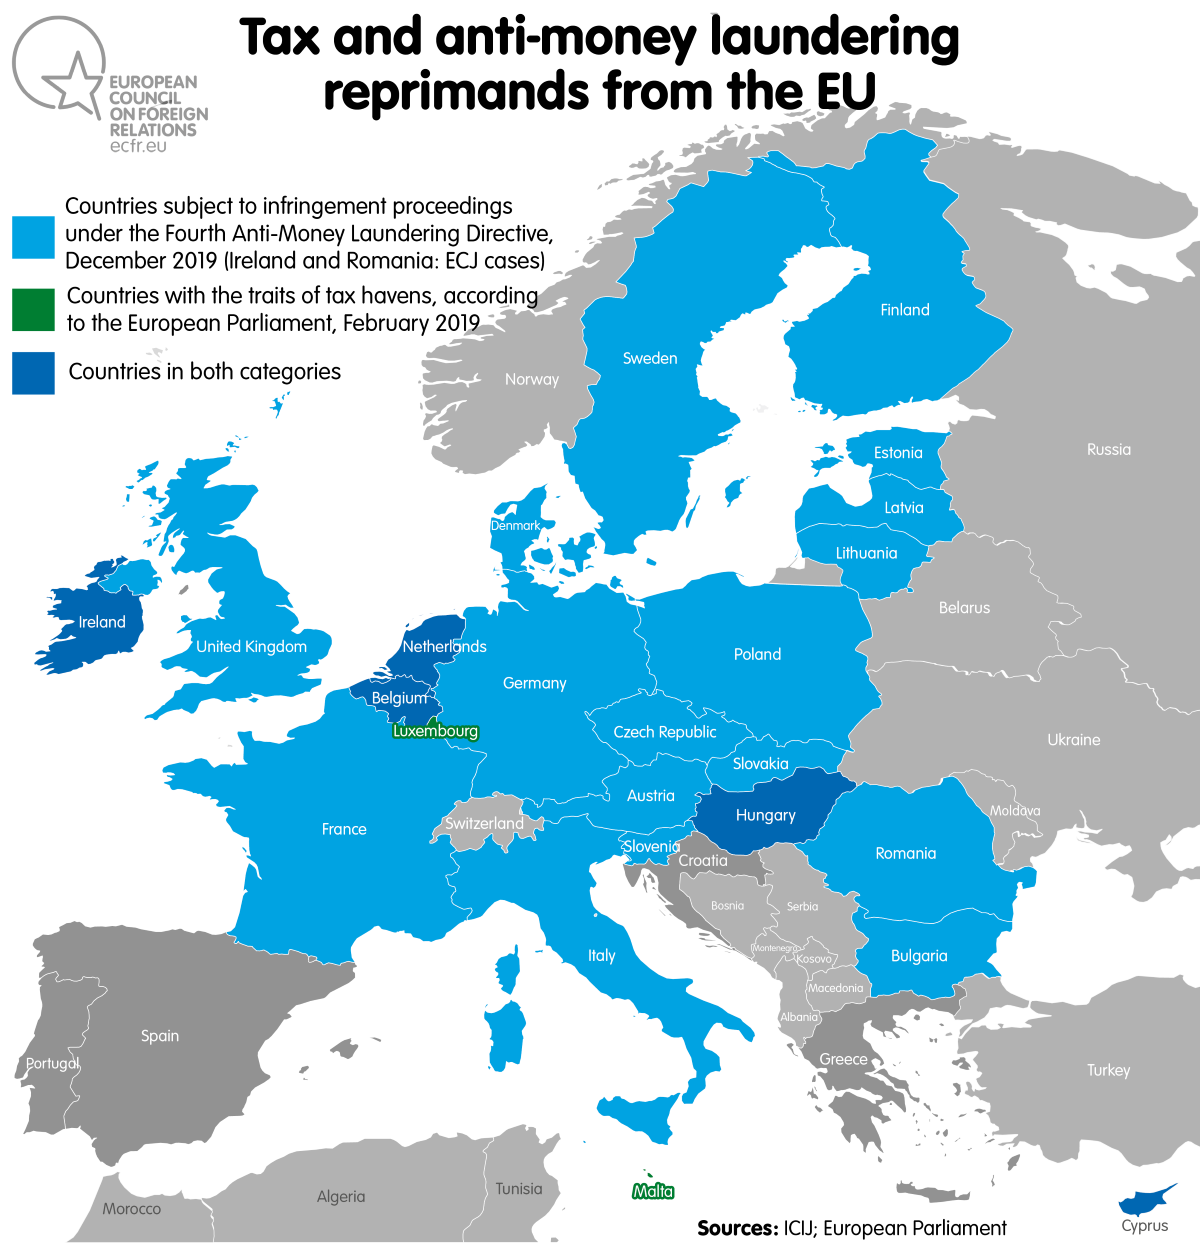 Map: Tax and anti-money laundering reprimands from the EU